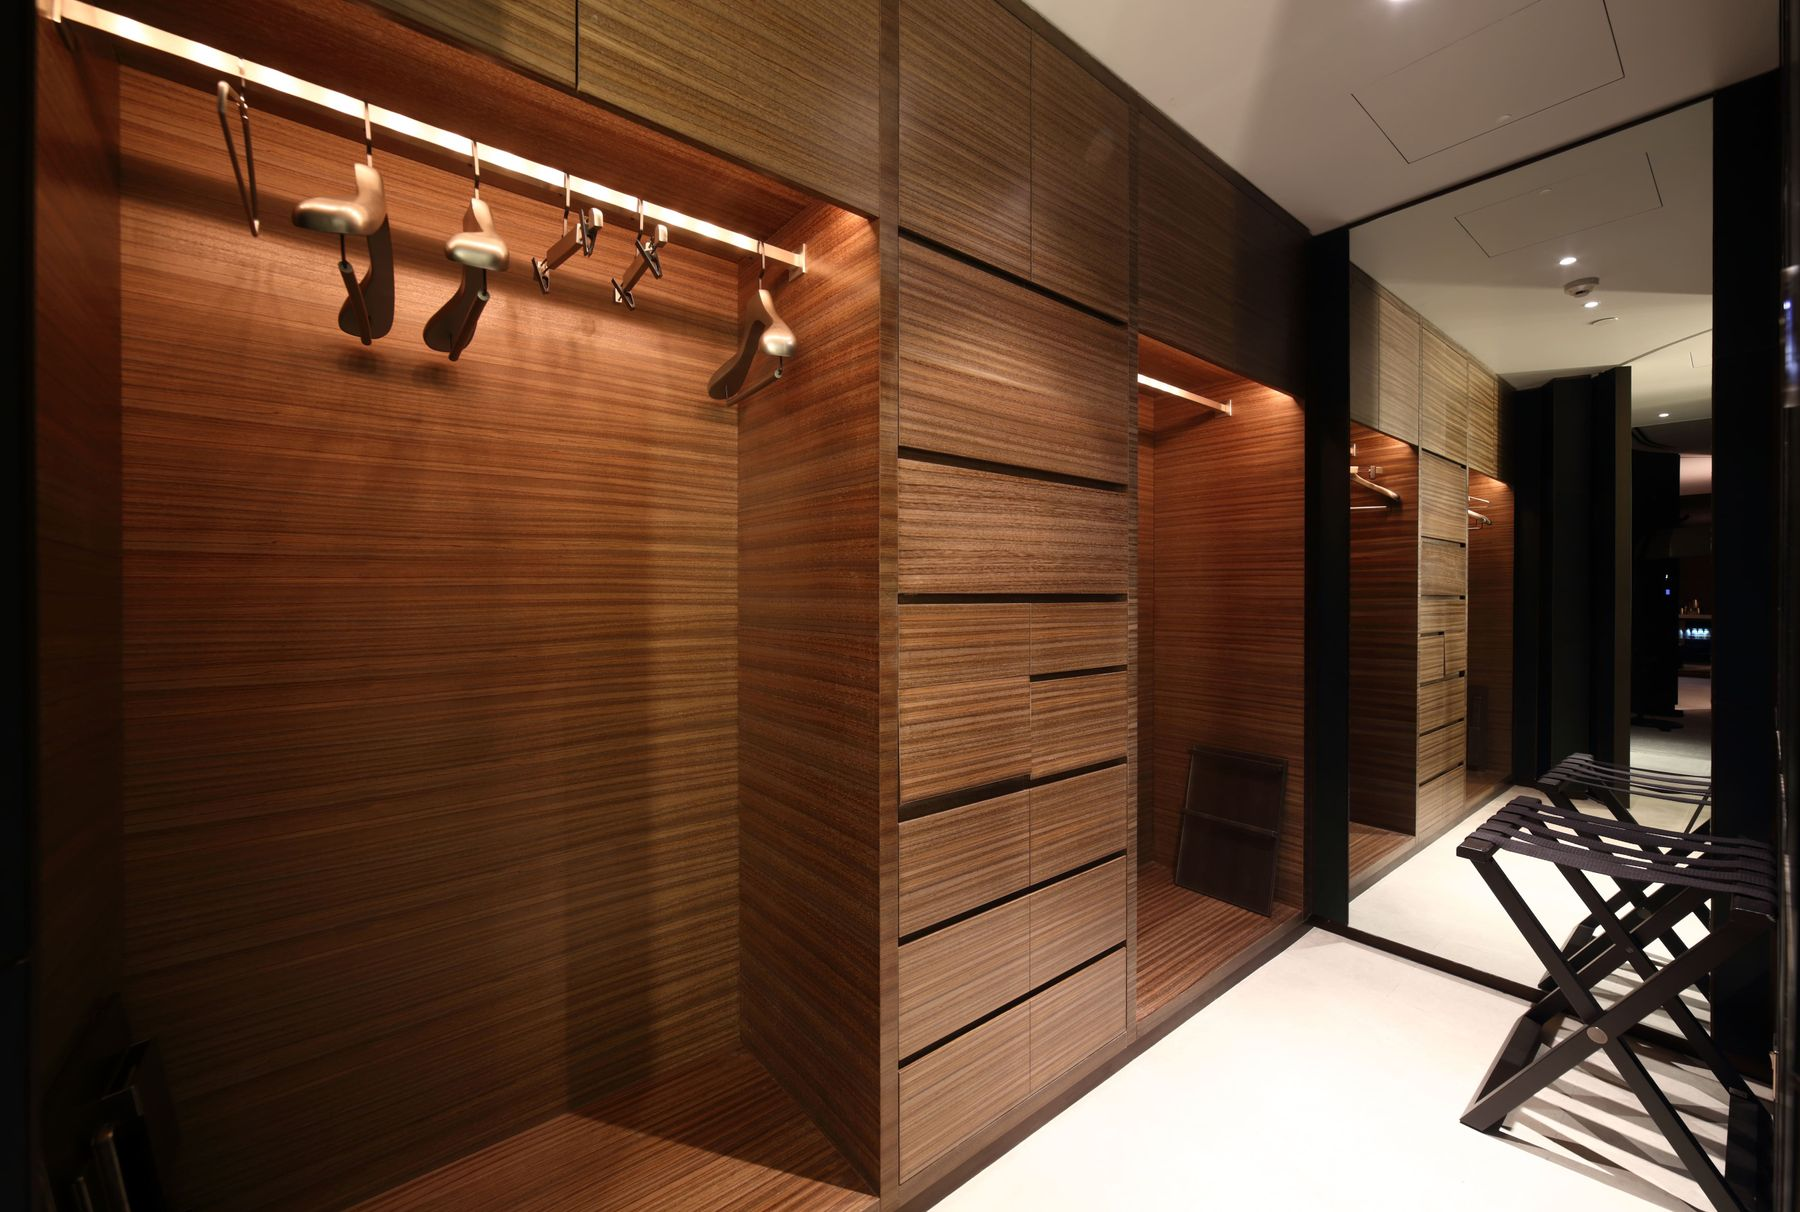 Cover Cabinets with Wood